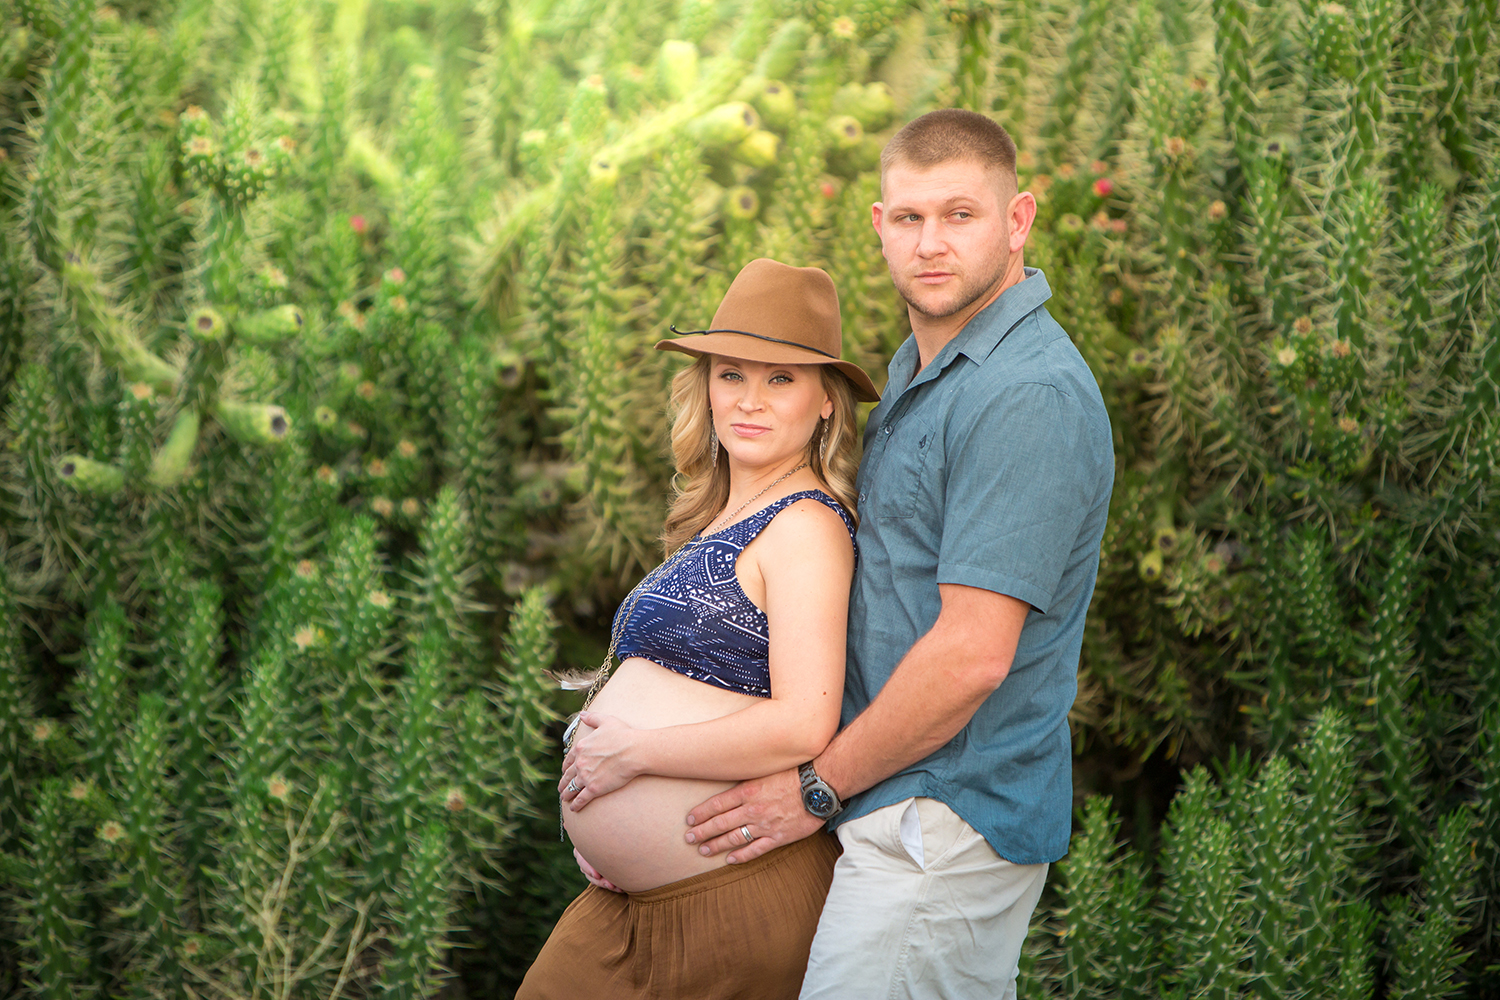 Dena_Rooney_Maternity_Portraits_013.jpg